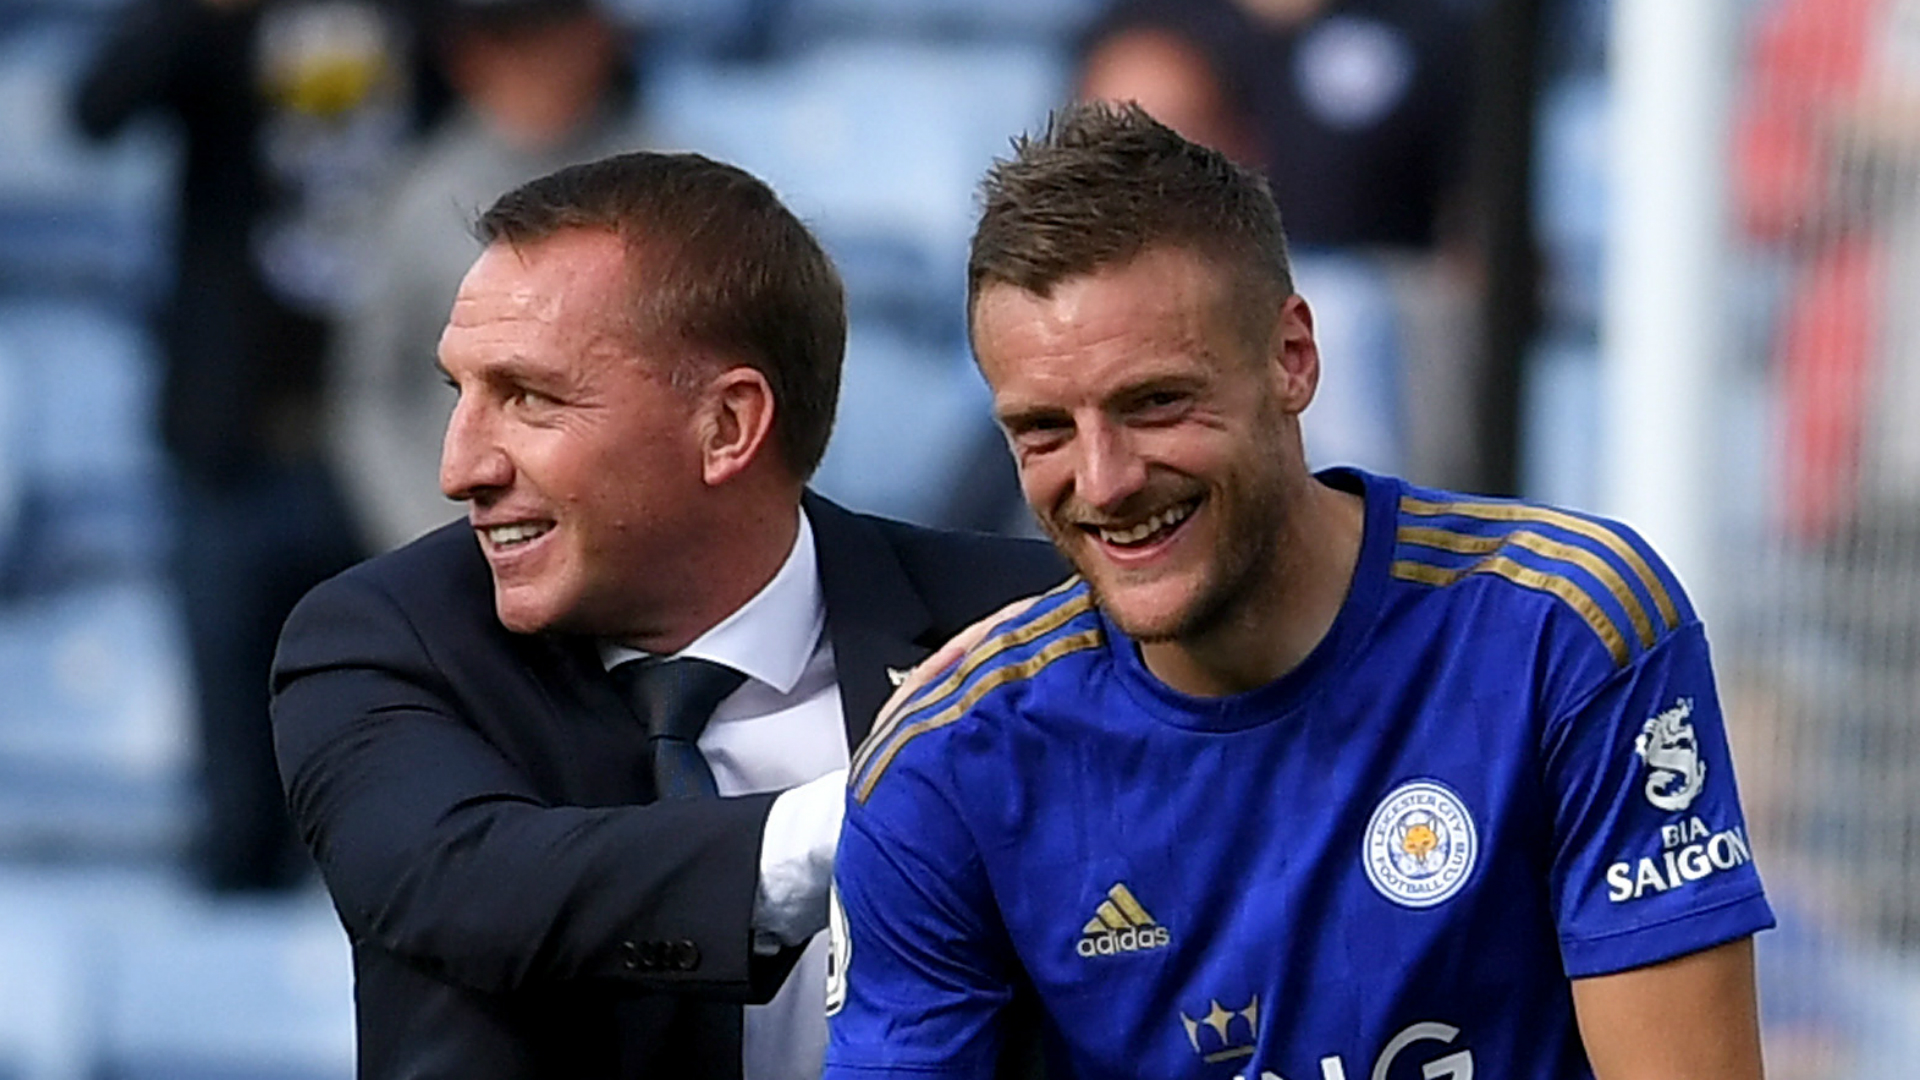 Vardy Party! Leicester City star is officially Premier League's hottest striker